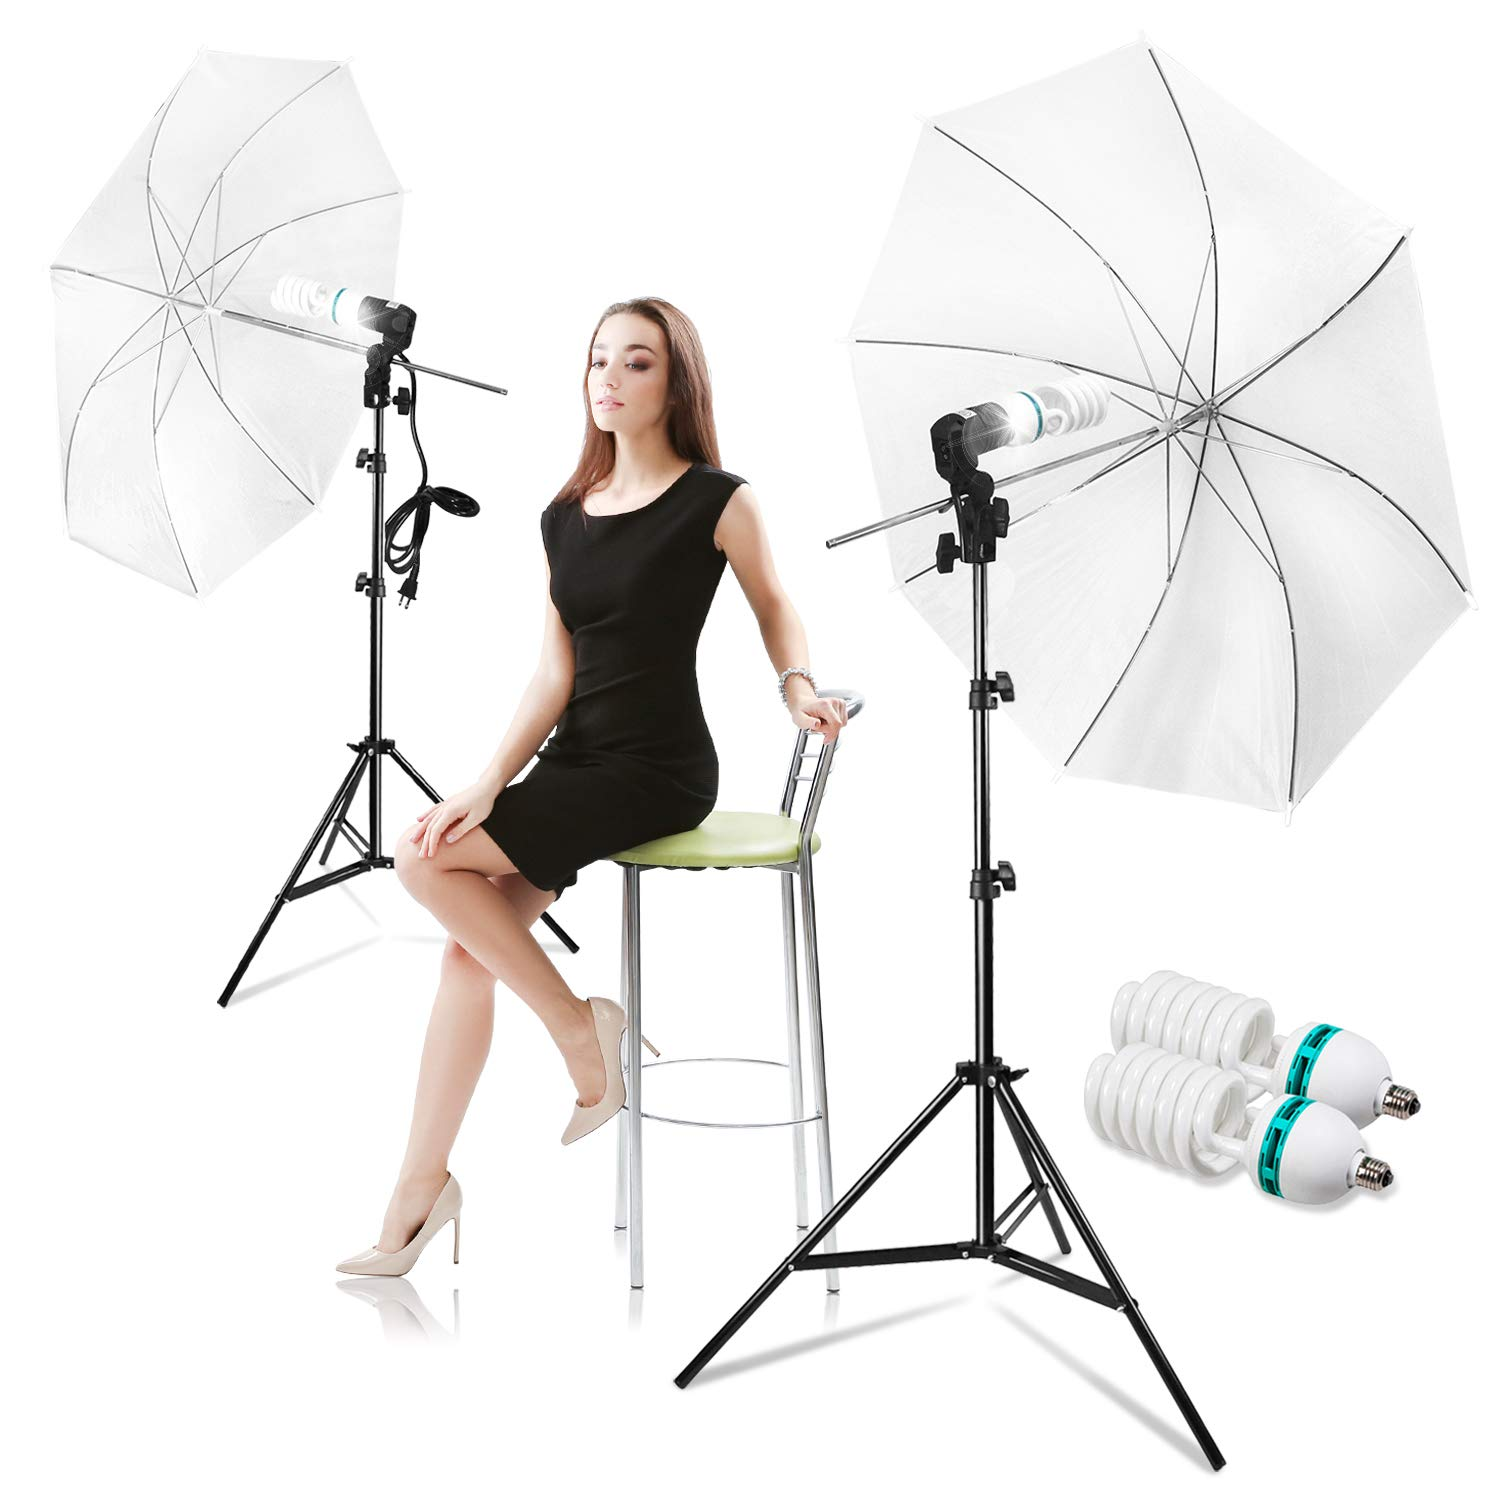 LimoStudio Photography Photo Portrait Studio Day Light 33'' Translucent Natural Lighting White Umbrella Continuous Lighting Kit, AGG2912